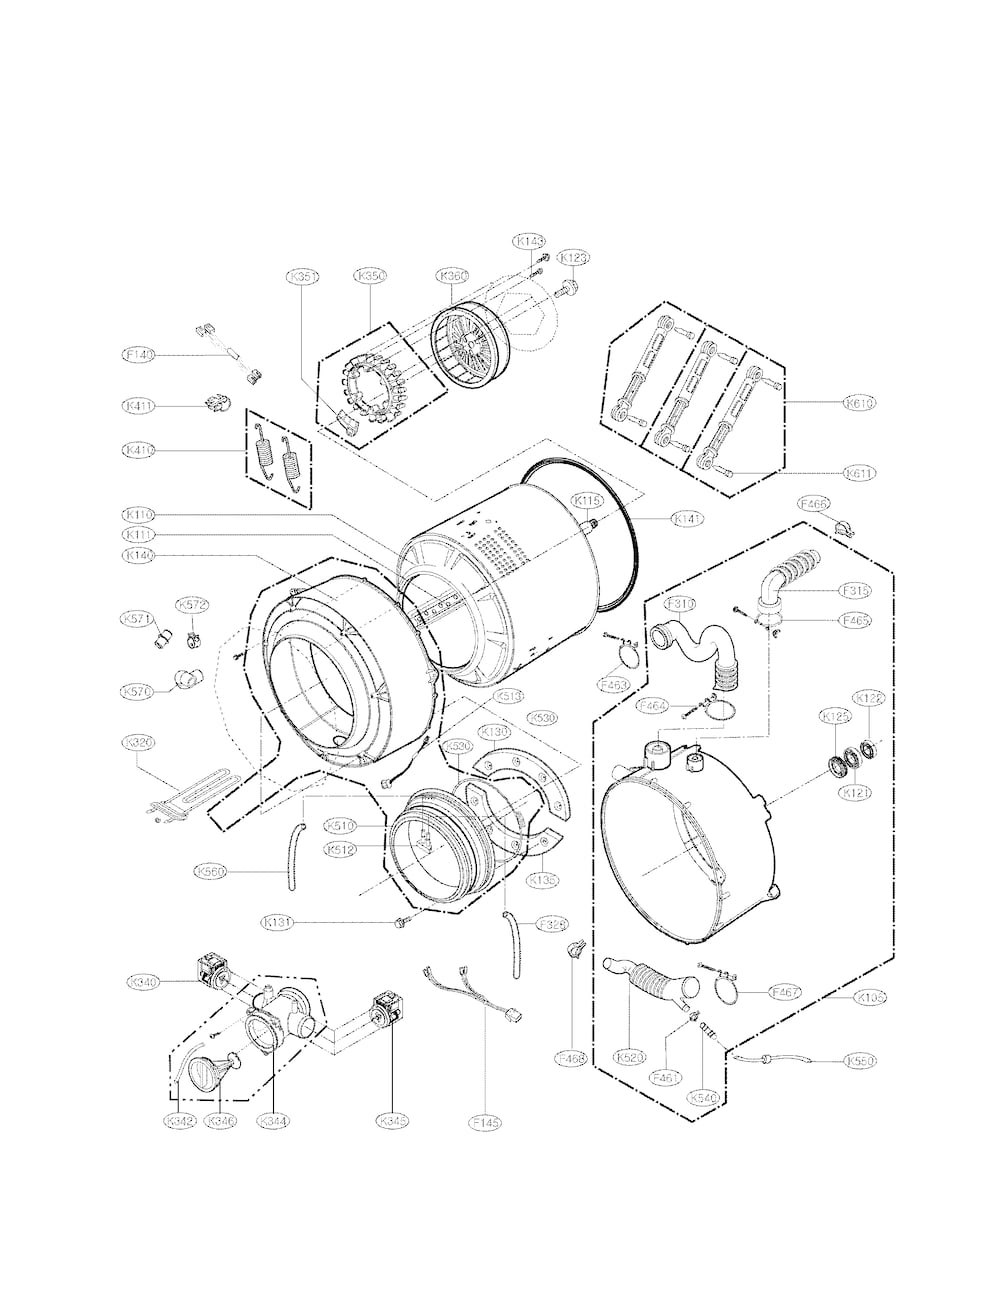 Unusual samsung washer wiring diagram gallery electrical circuit